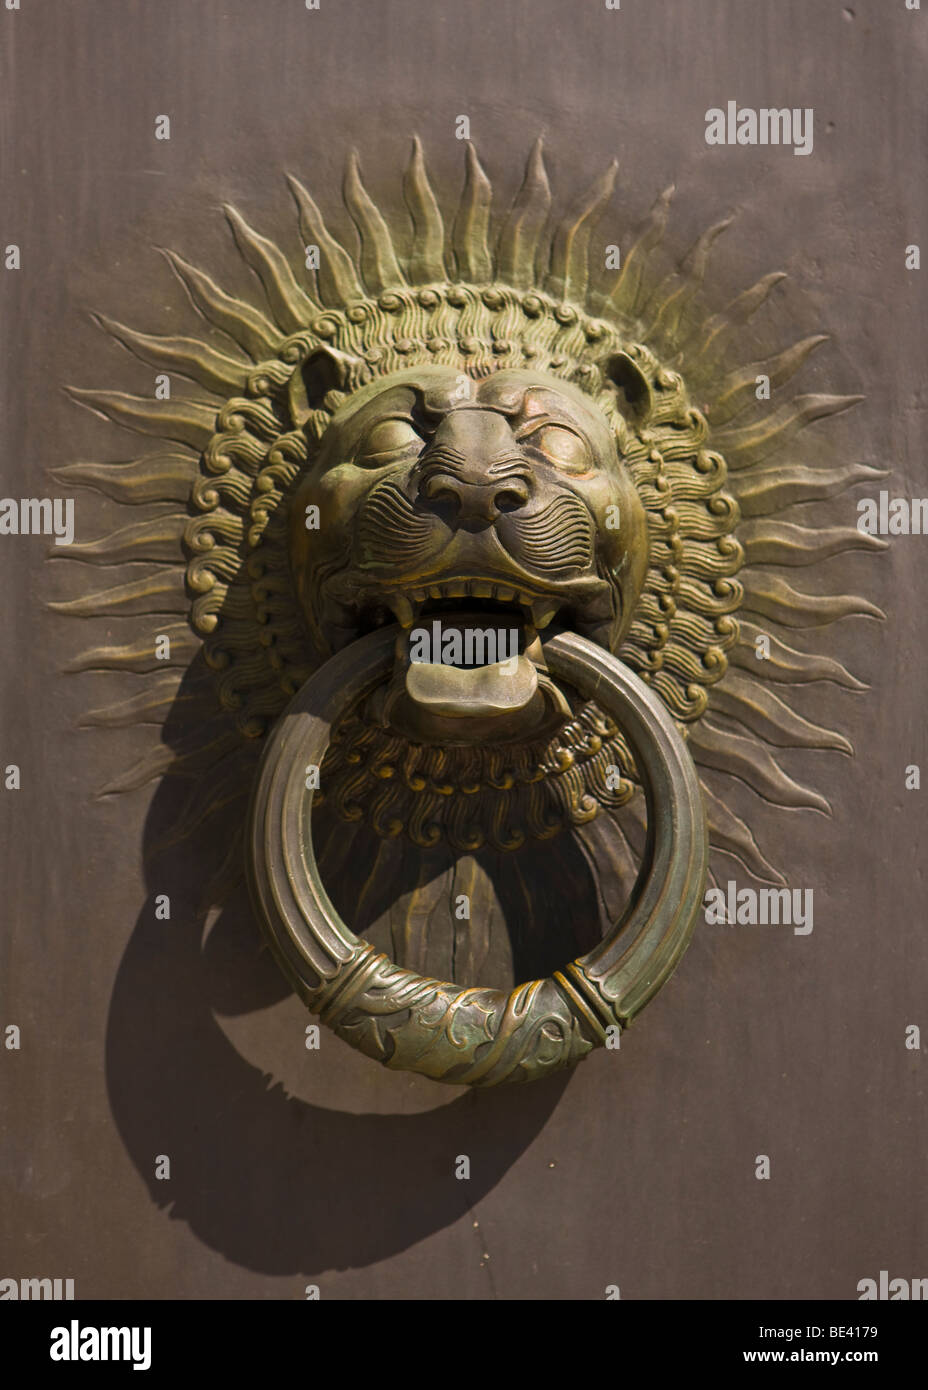 WASHINGTON, DC, USA - Door knocker at entrance to Scottish Rite of Freemasonry building, also known as the House - Stock Image